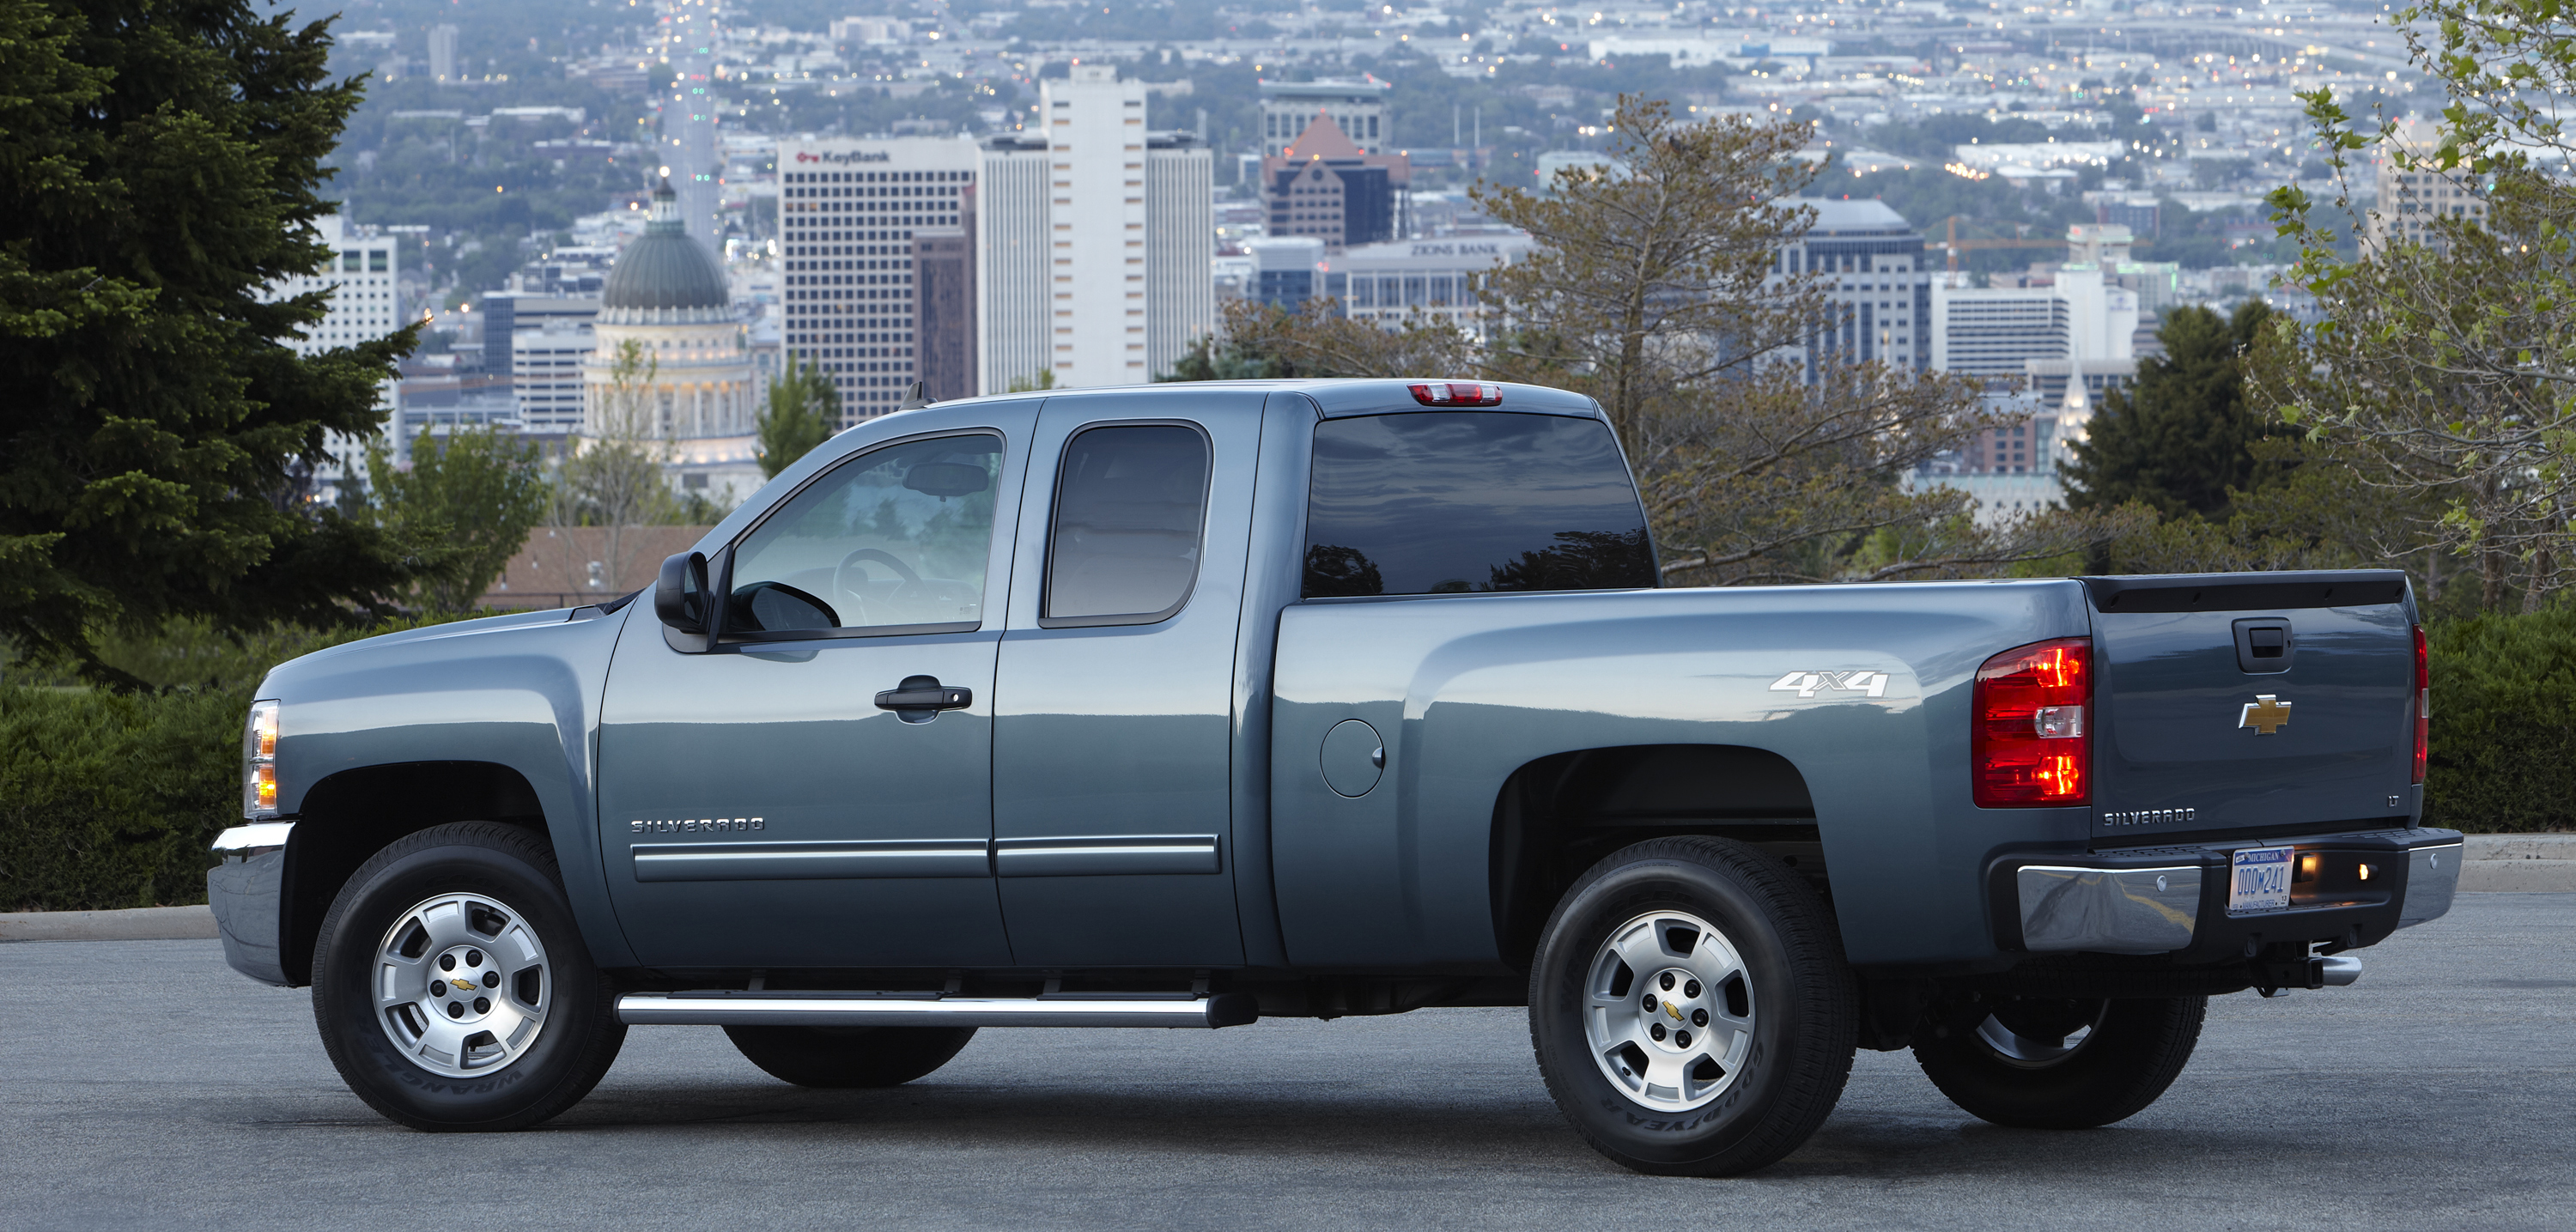 Joe Basil Chevrolet >> Certified Pre-Owned Vehicles Include Complimentary ...